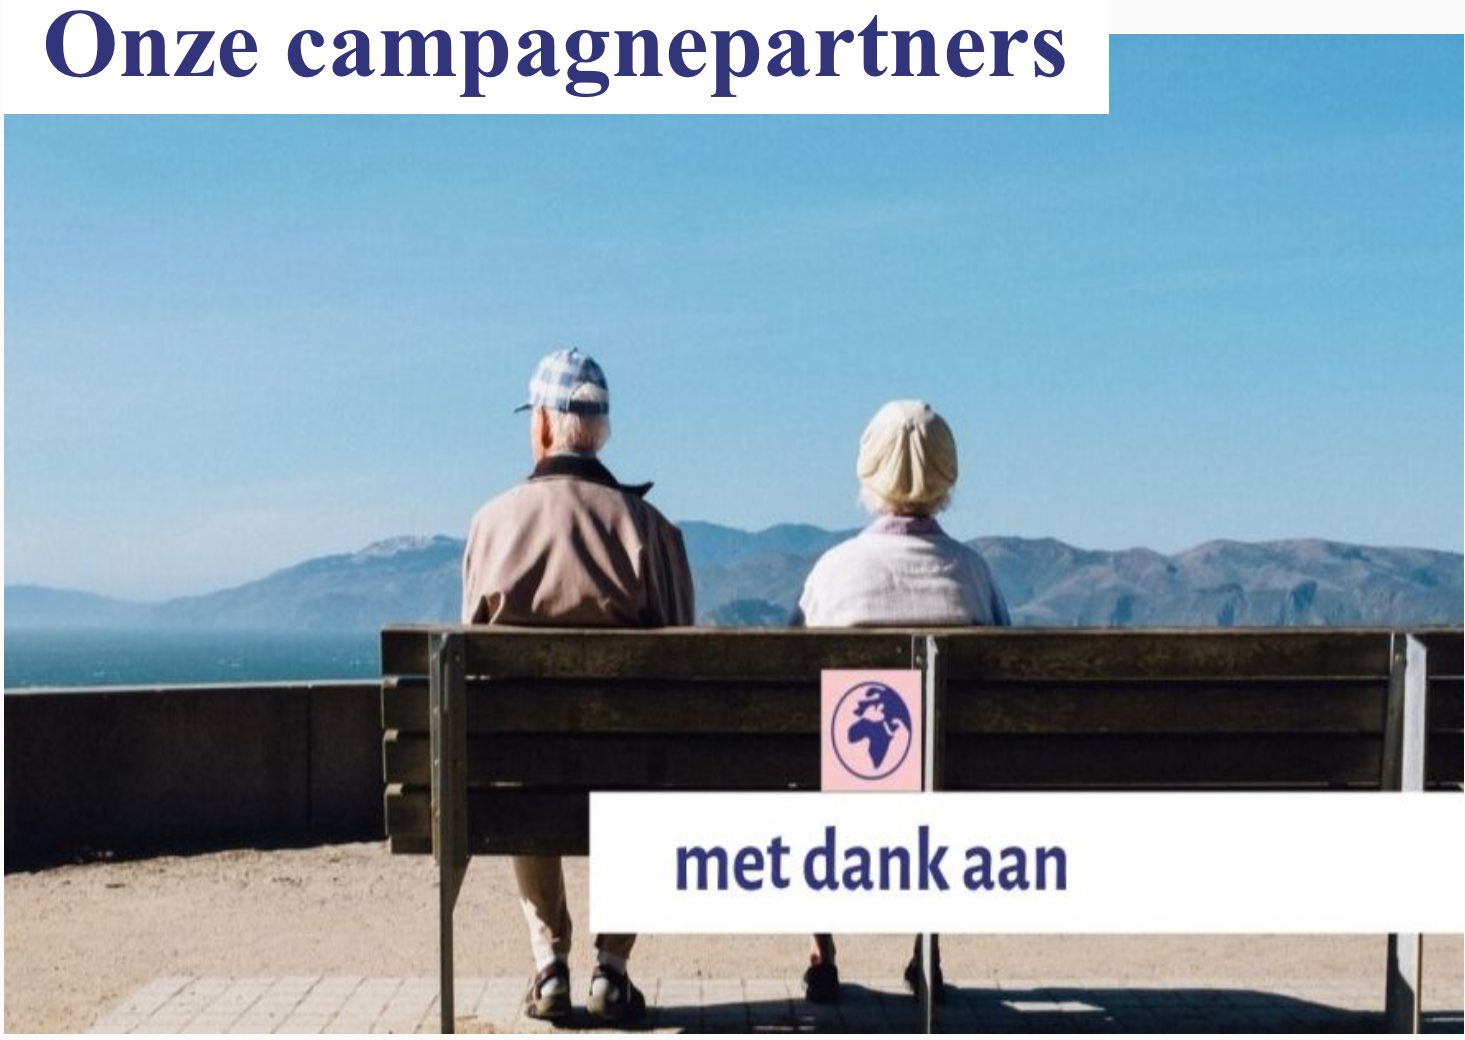 Campagne partners.